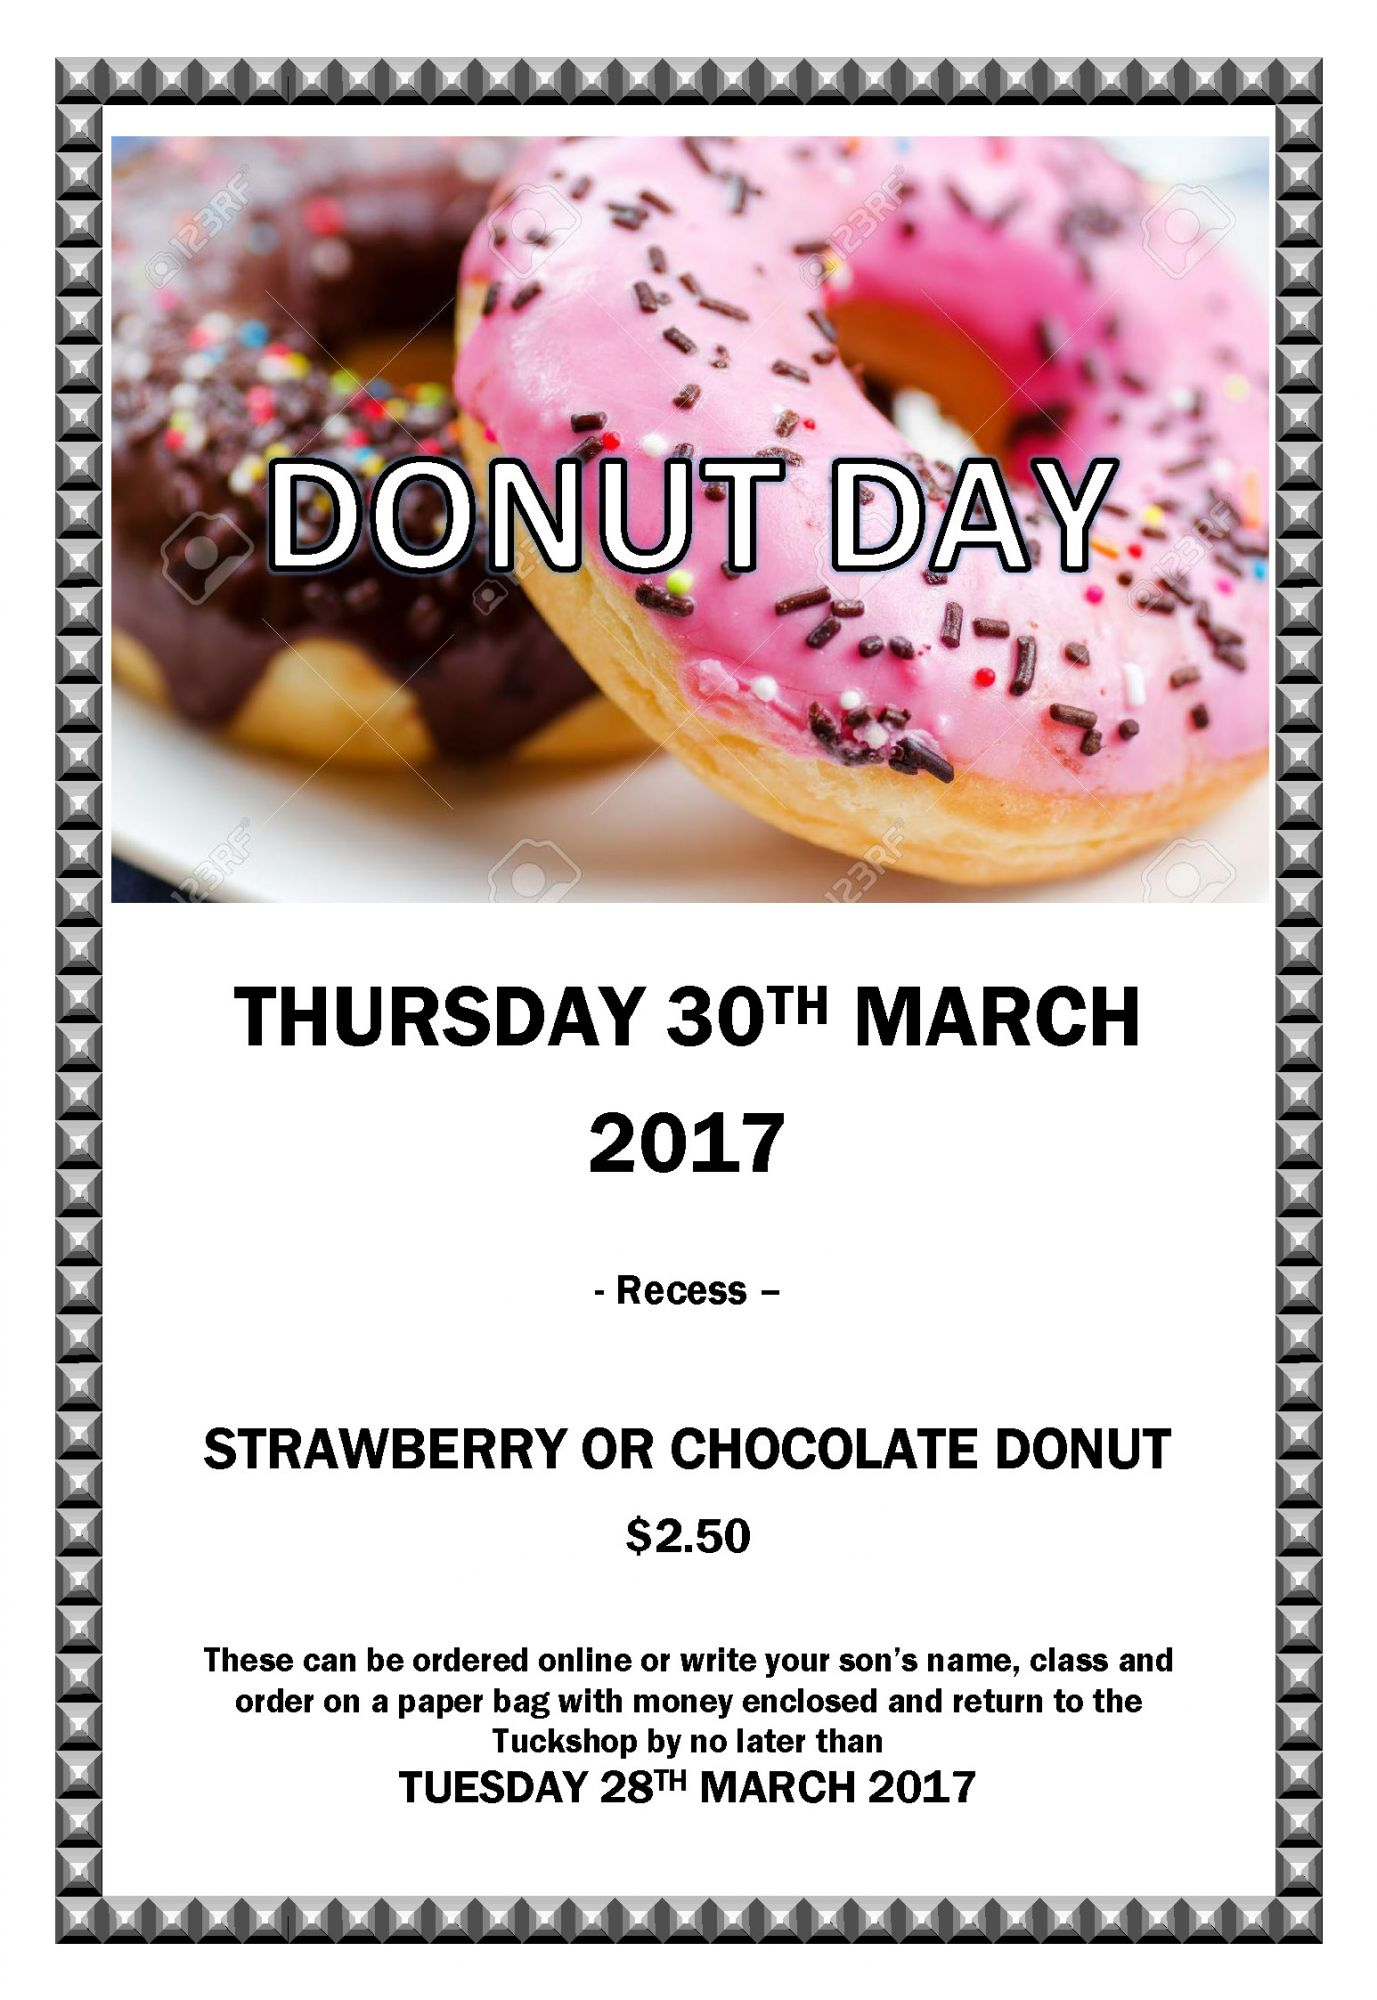 Donut Day Flyer Wyvern